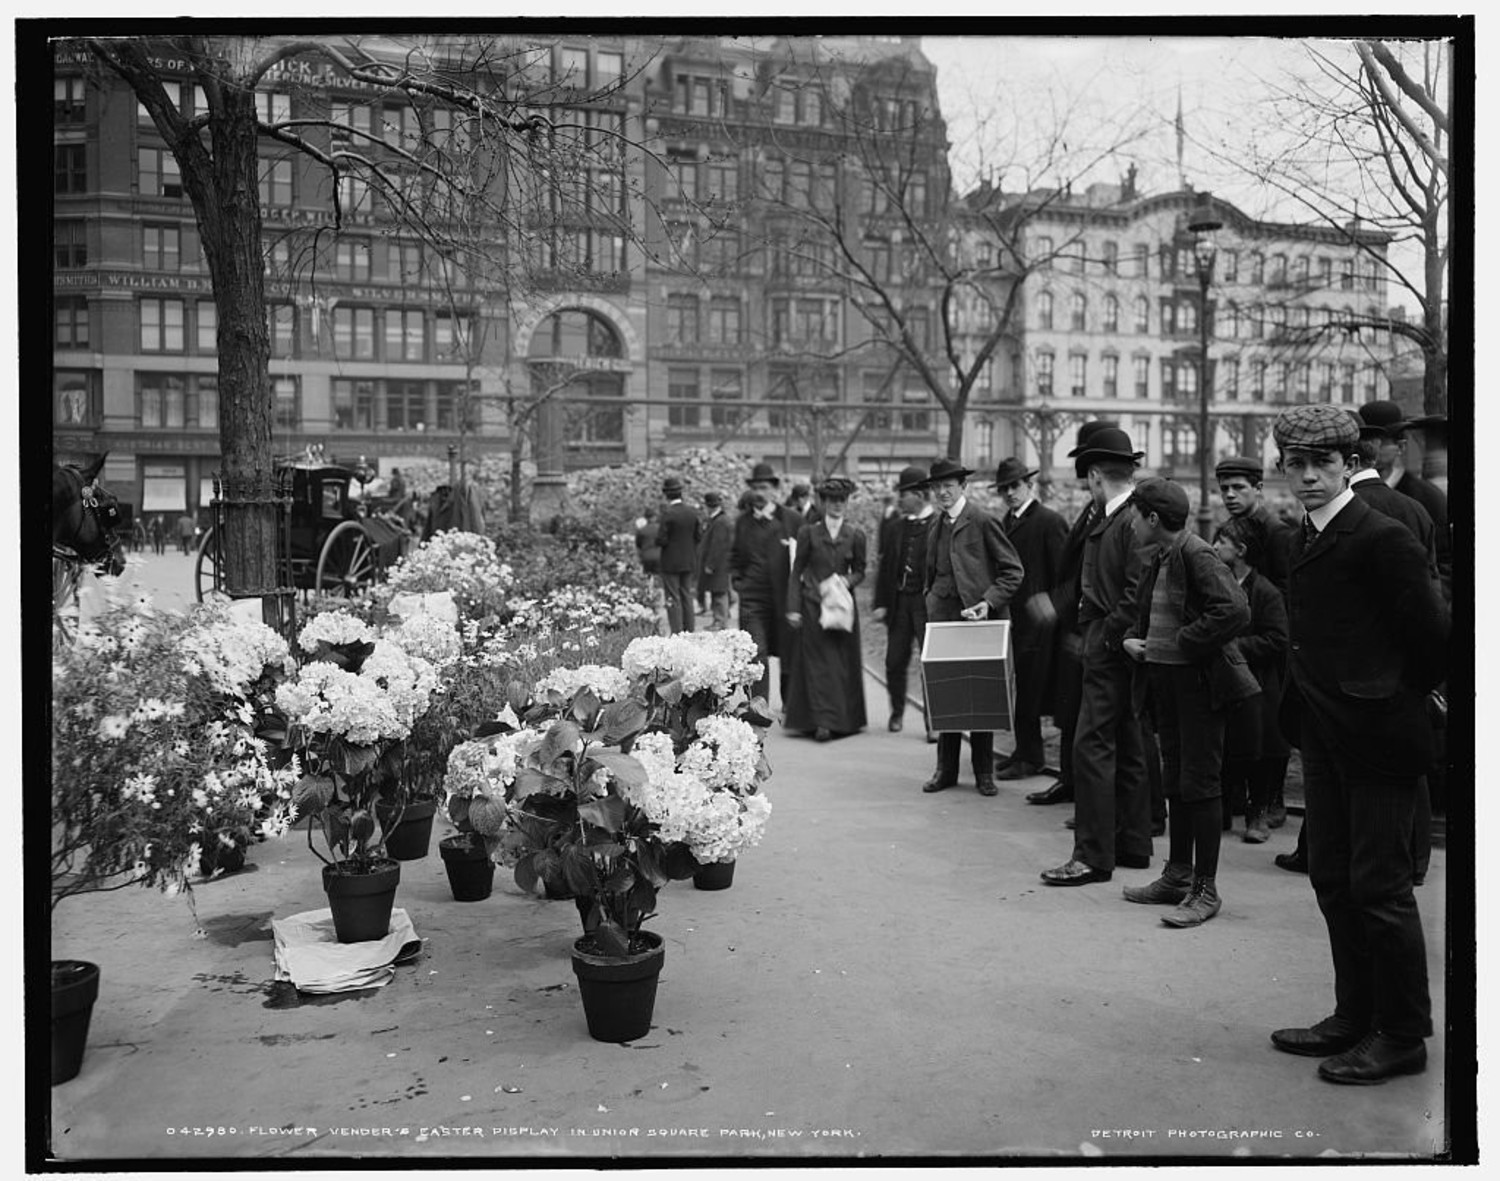 This Vintage Photograph From The Library Of Congress Digital Collection Shows Easter Flower Vendors In Union Square Park Early 1900s